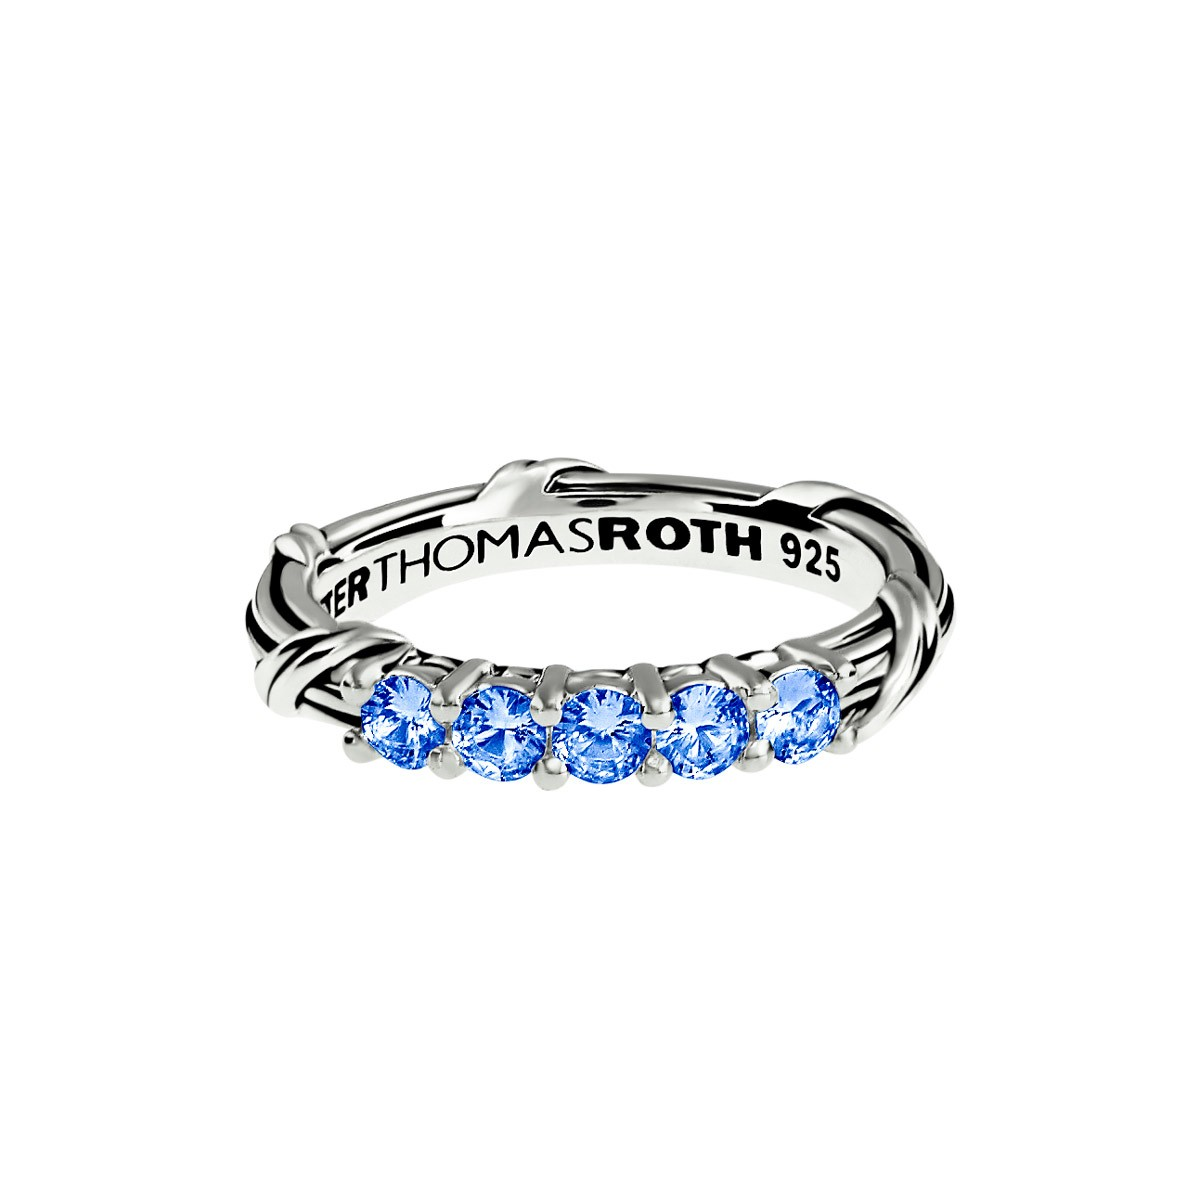 Signature Classic Five Stone Band Ring with Ceylon sapphires in sterling silver